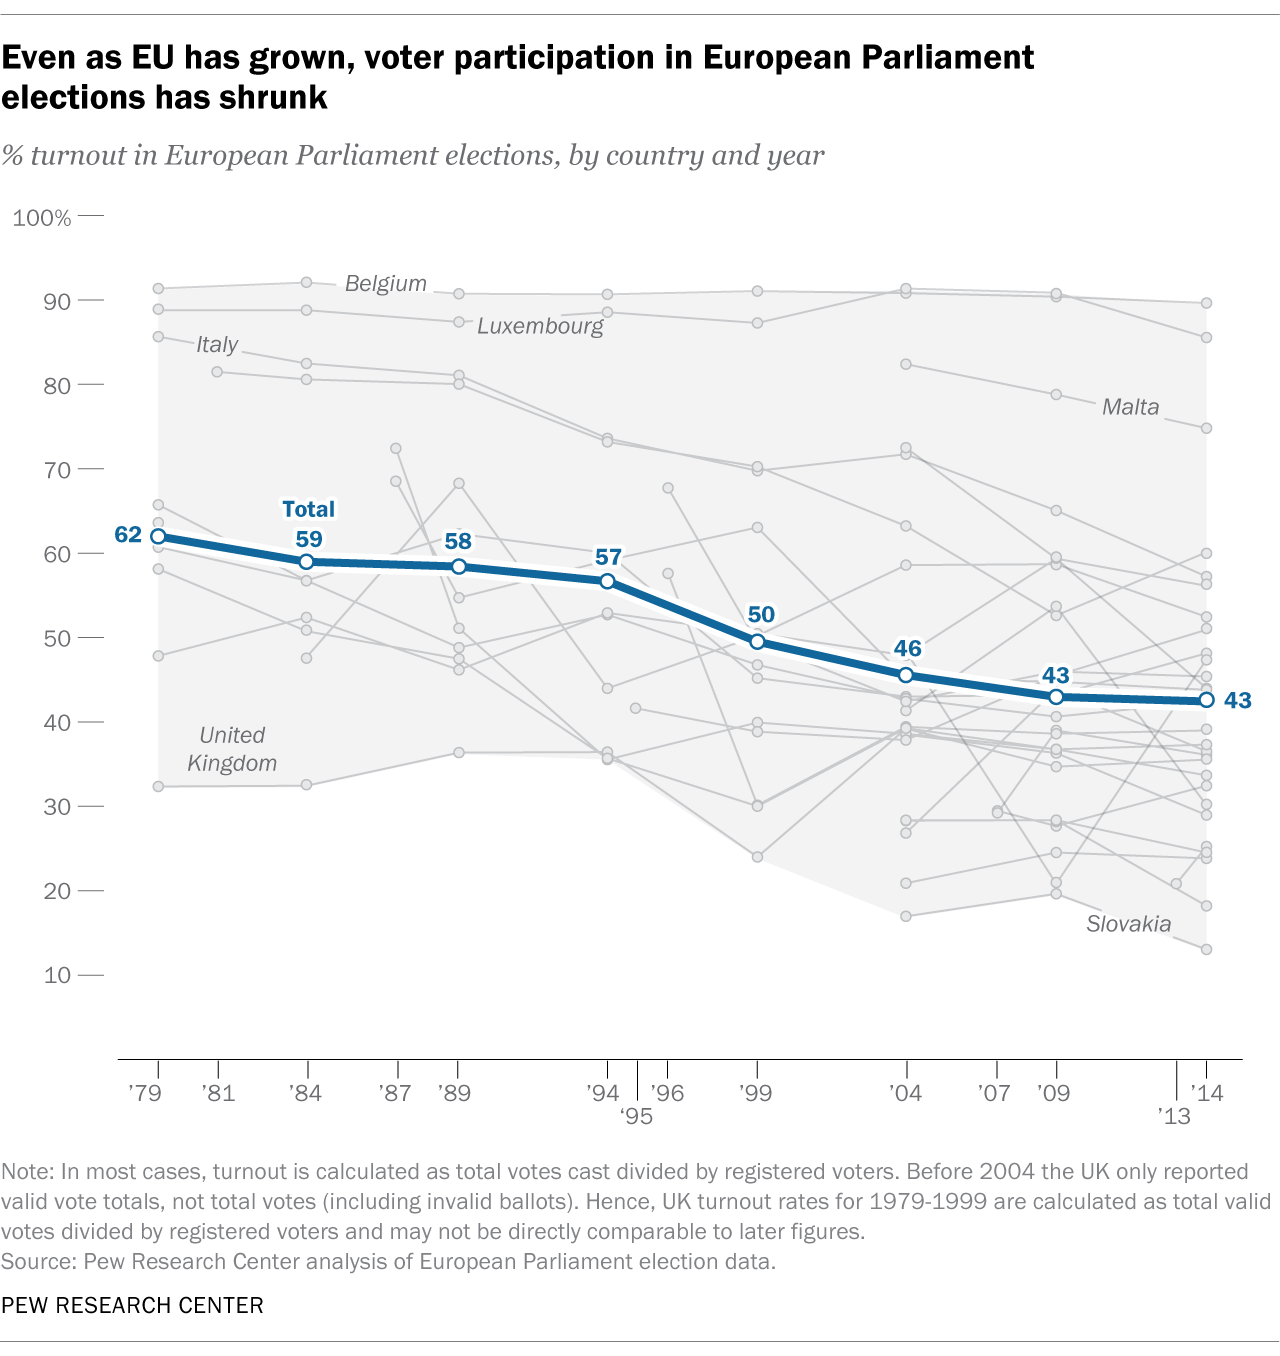 Even as EU has grown, voter participation in European Parliament elections has shrunk